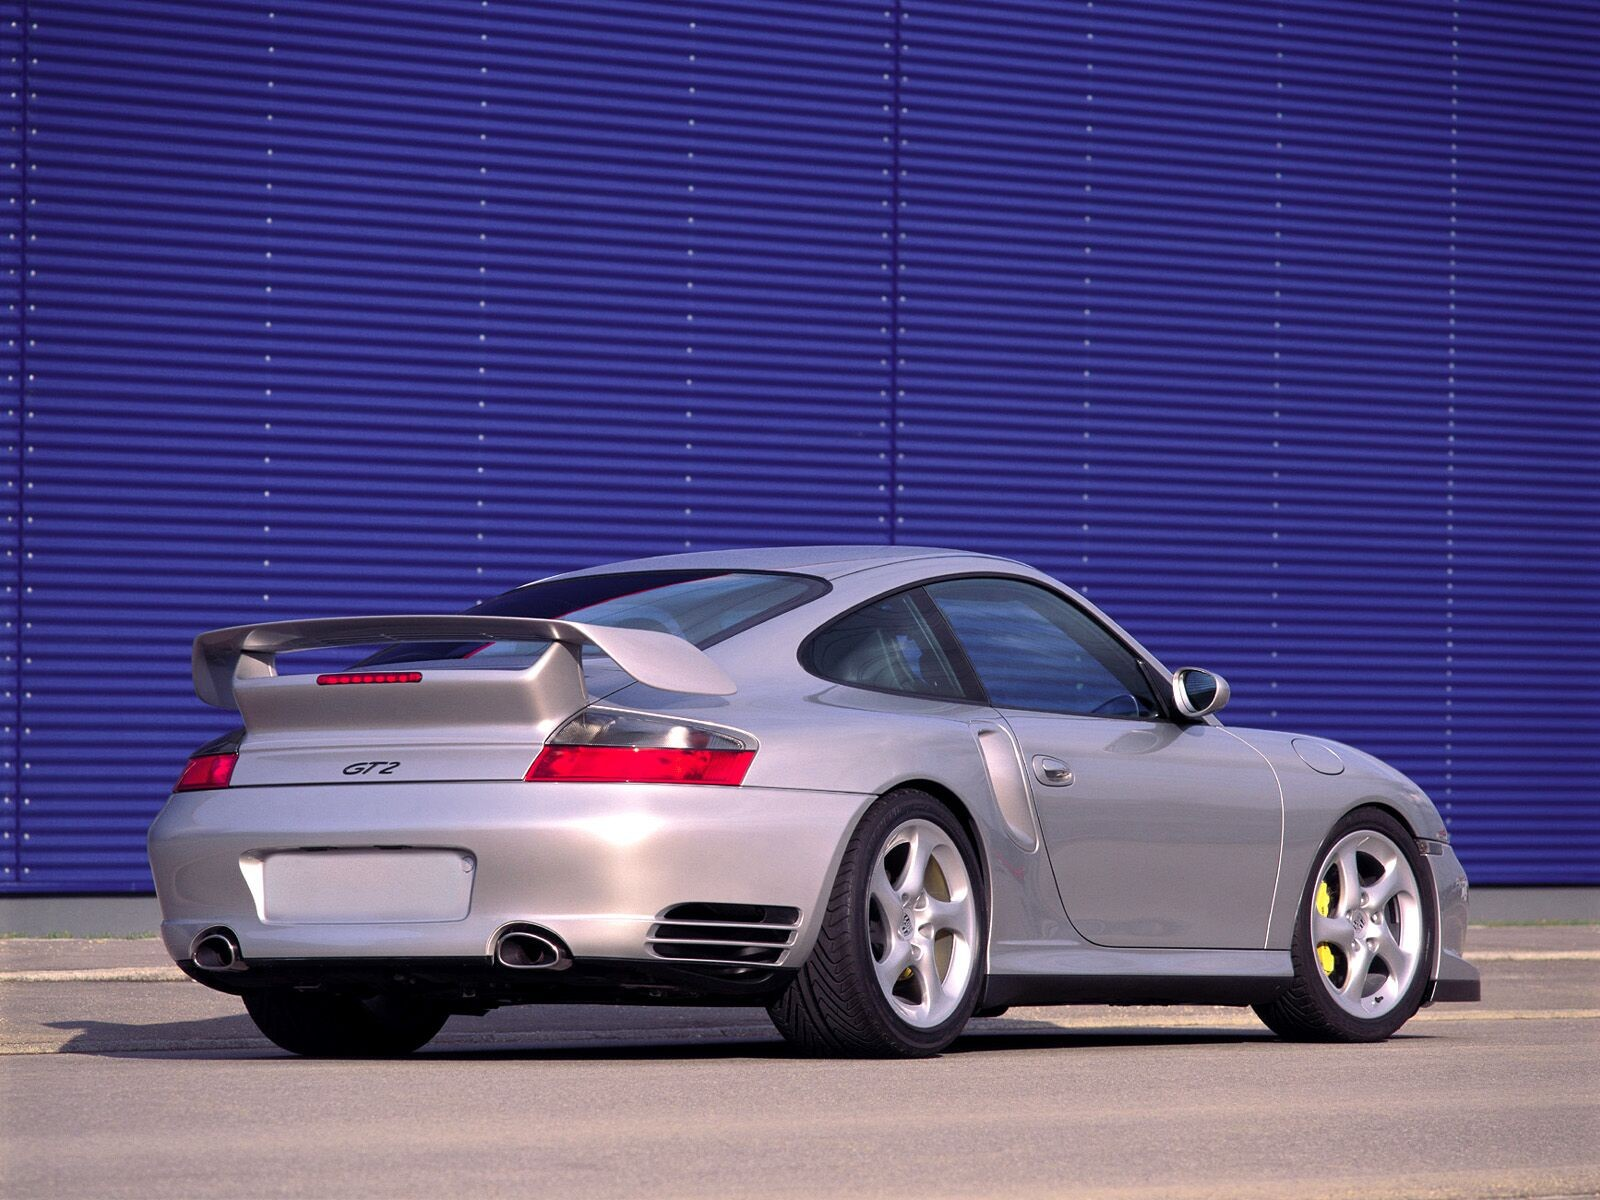 Porsche 911 Gt2 Rear View Outdoor